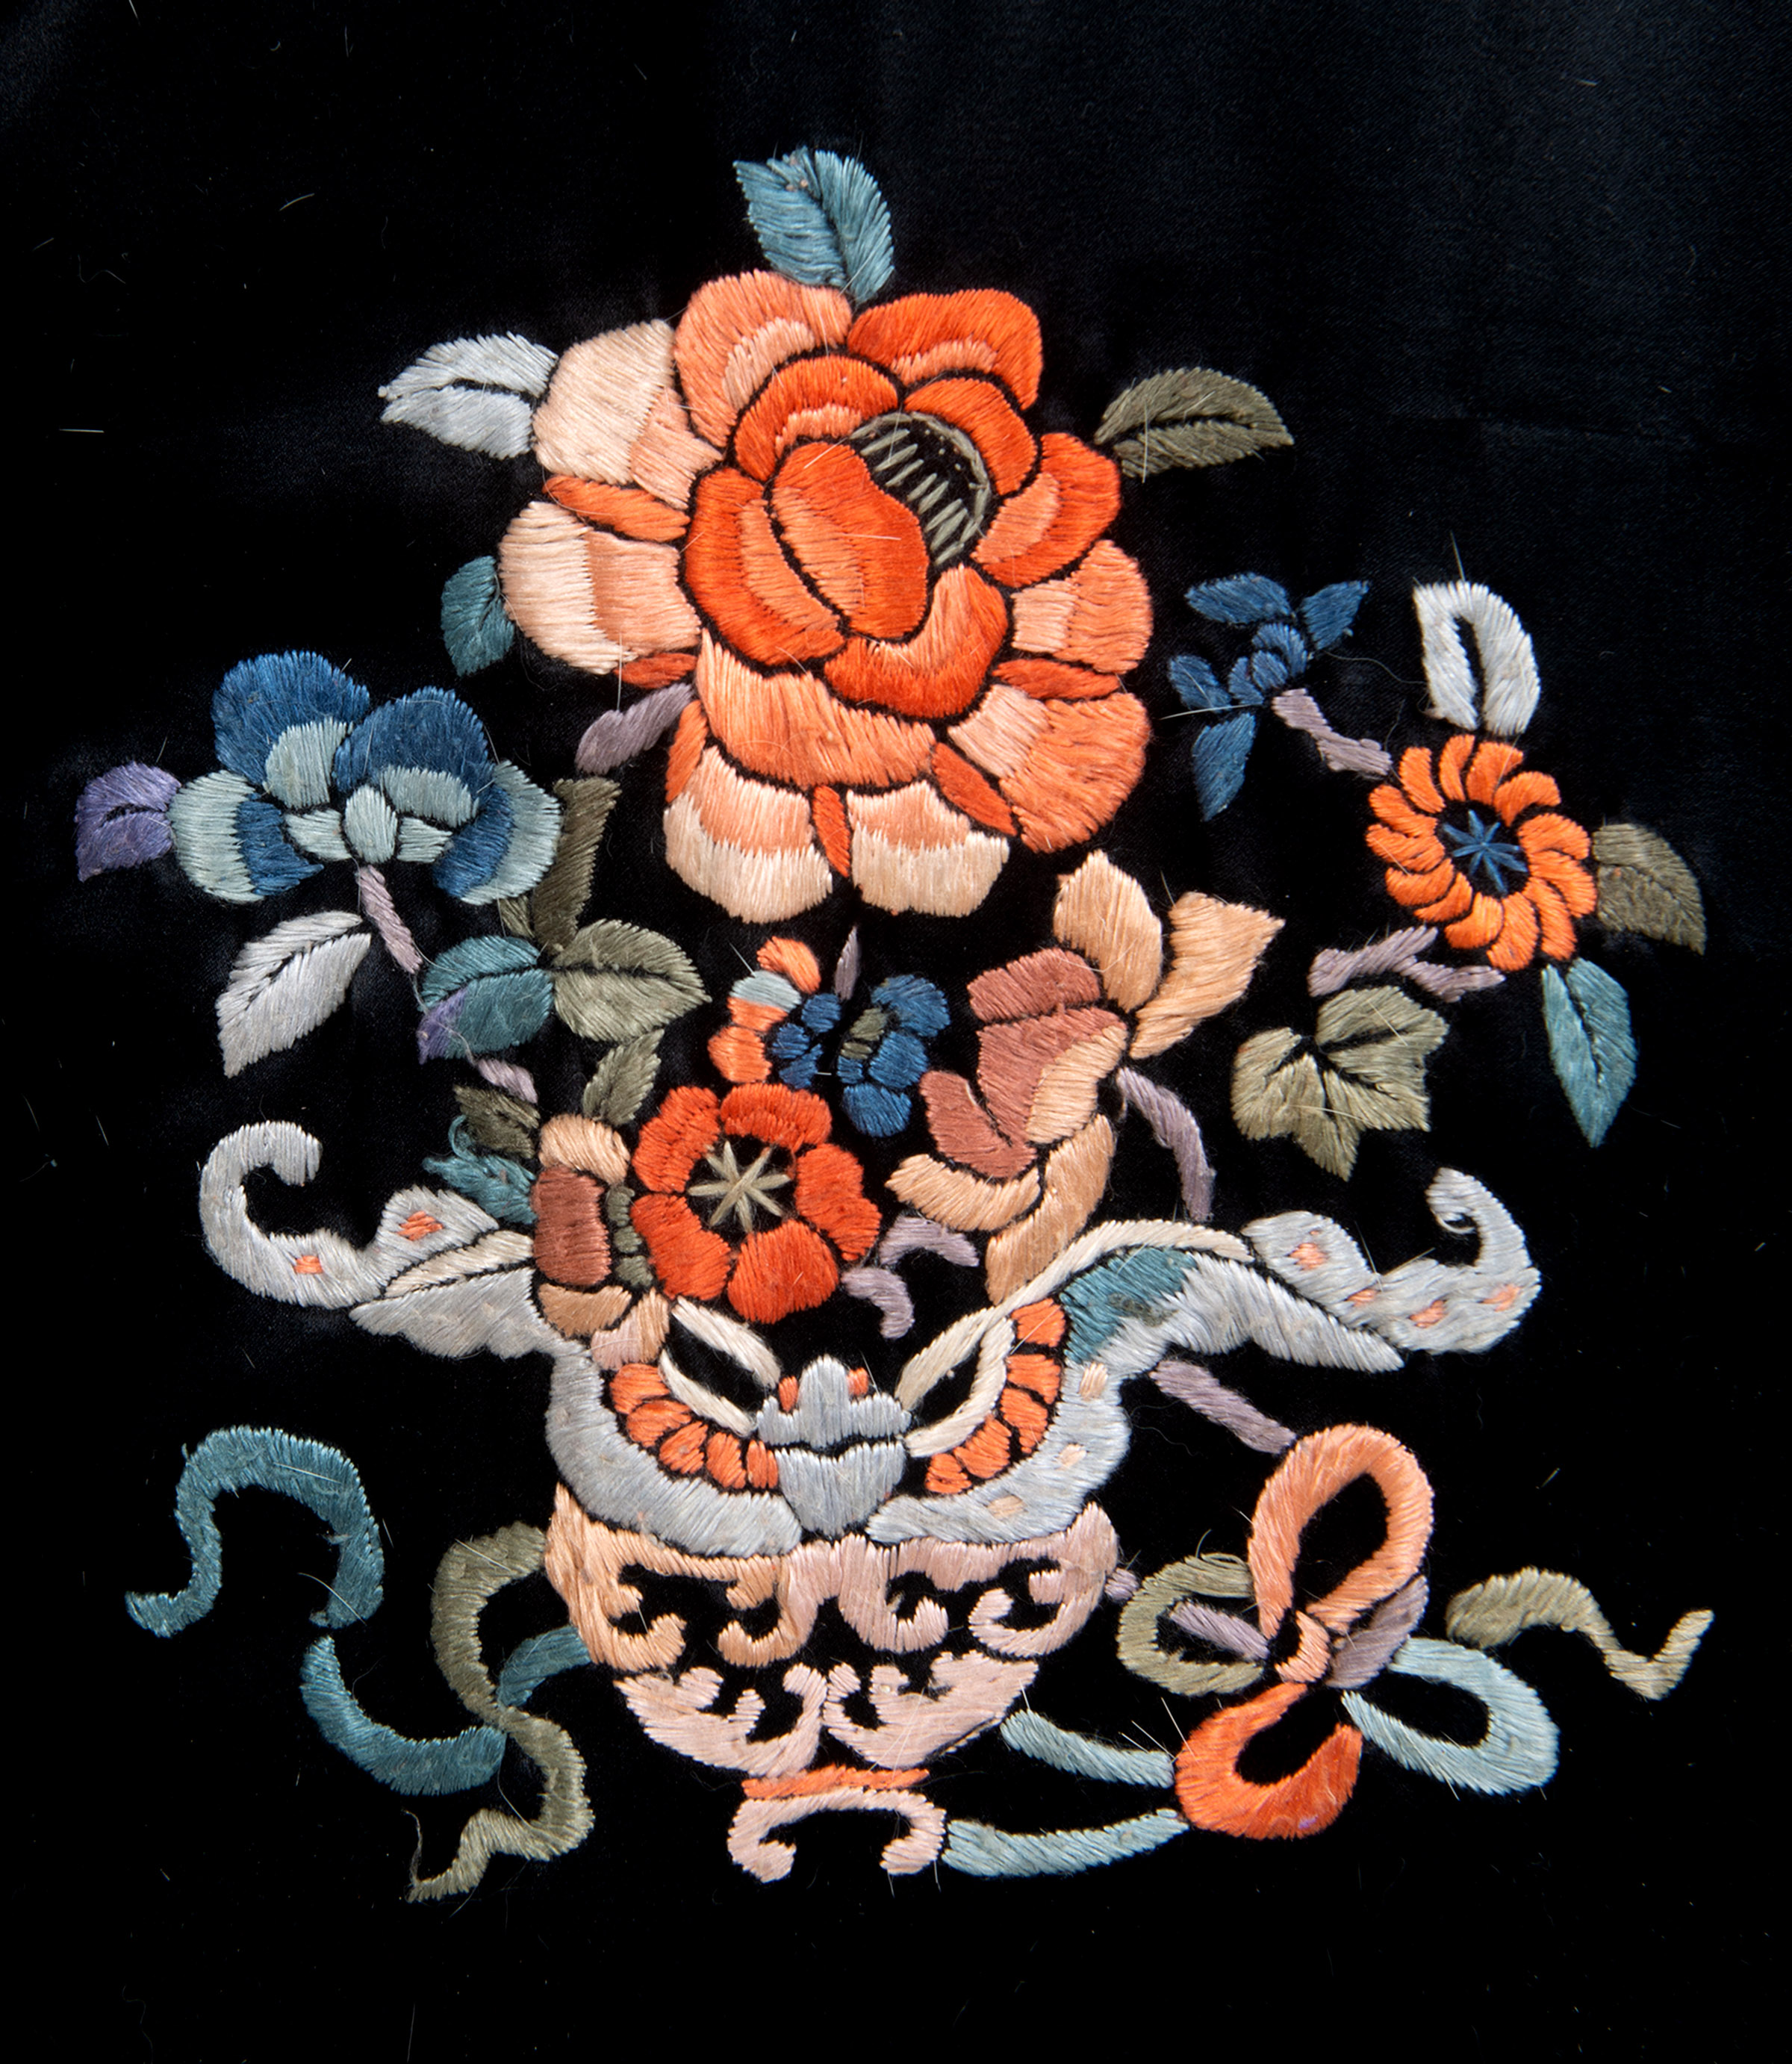 CHINESE FUR LINED EMBROIDERED COAT a fur lined coat adapted from a black silk Chinese robe, - Image 2 of 3